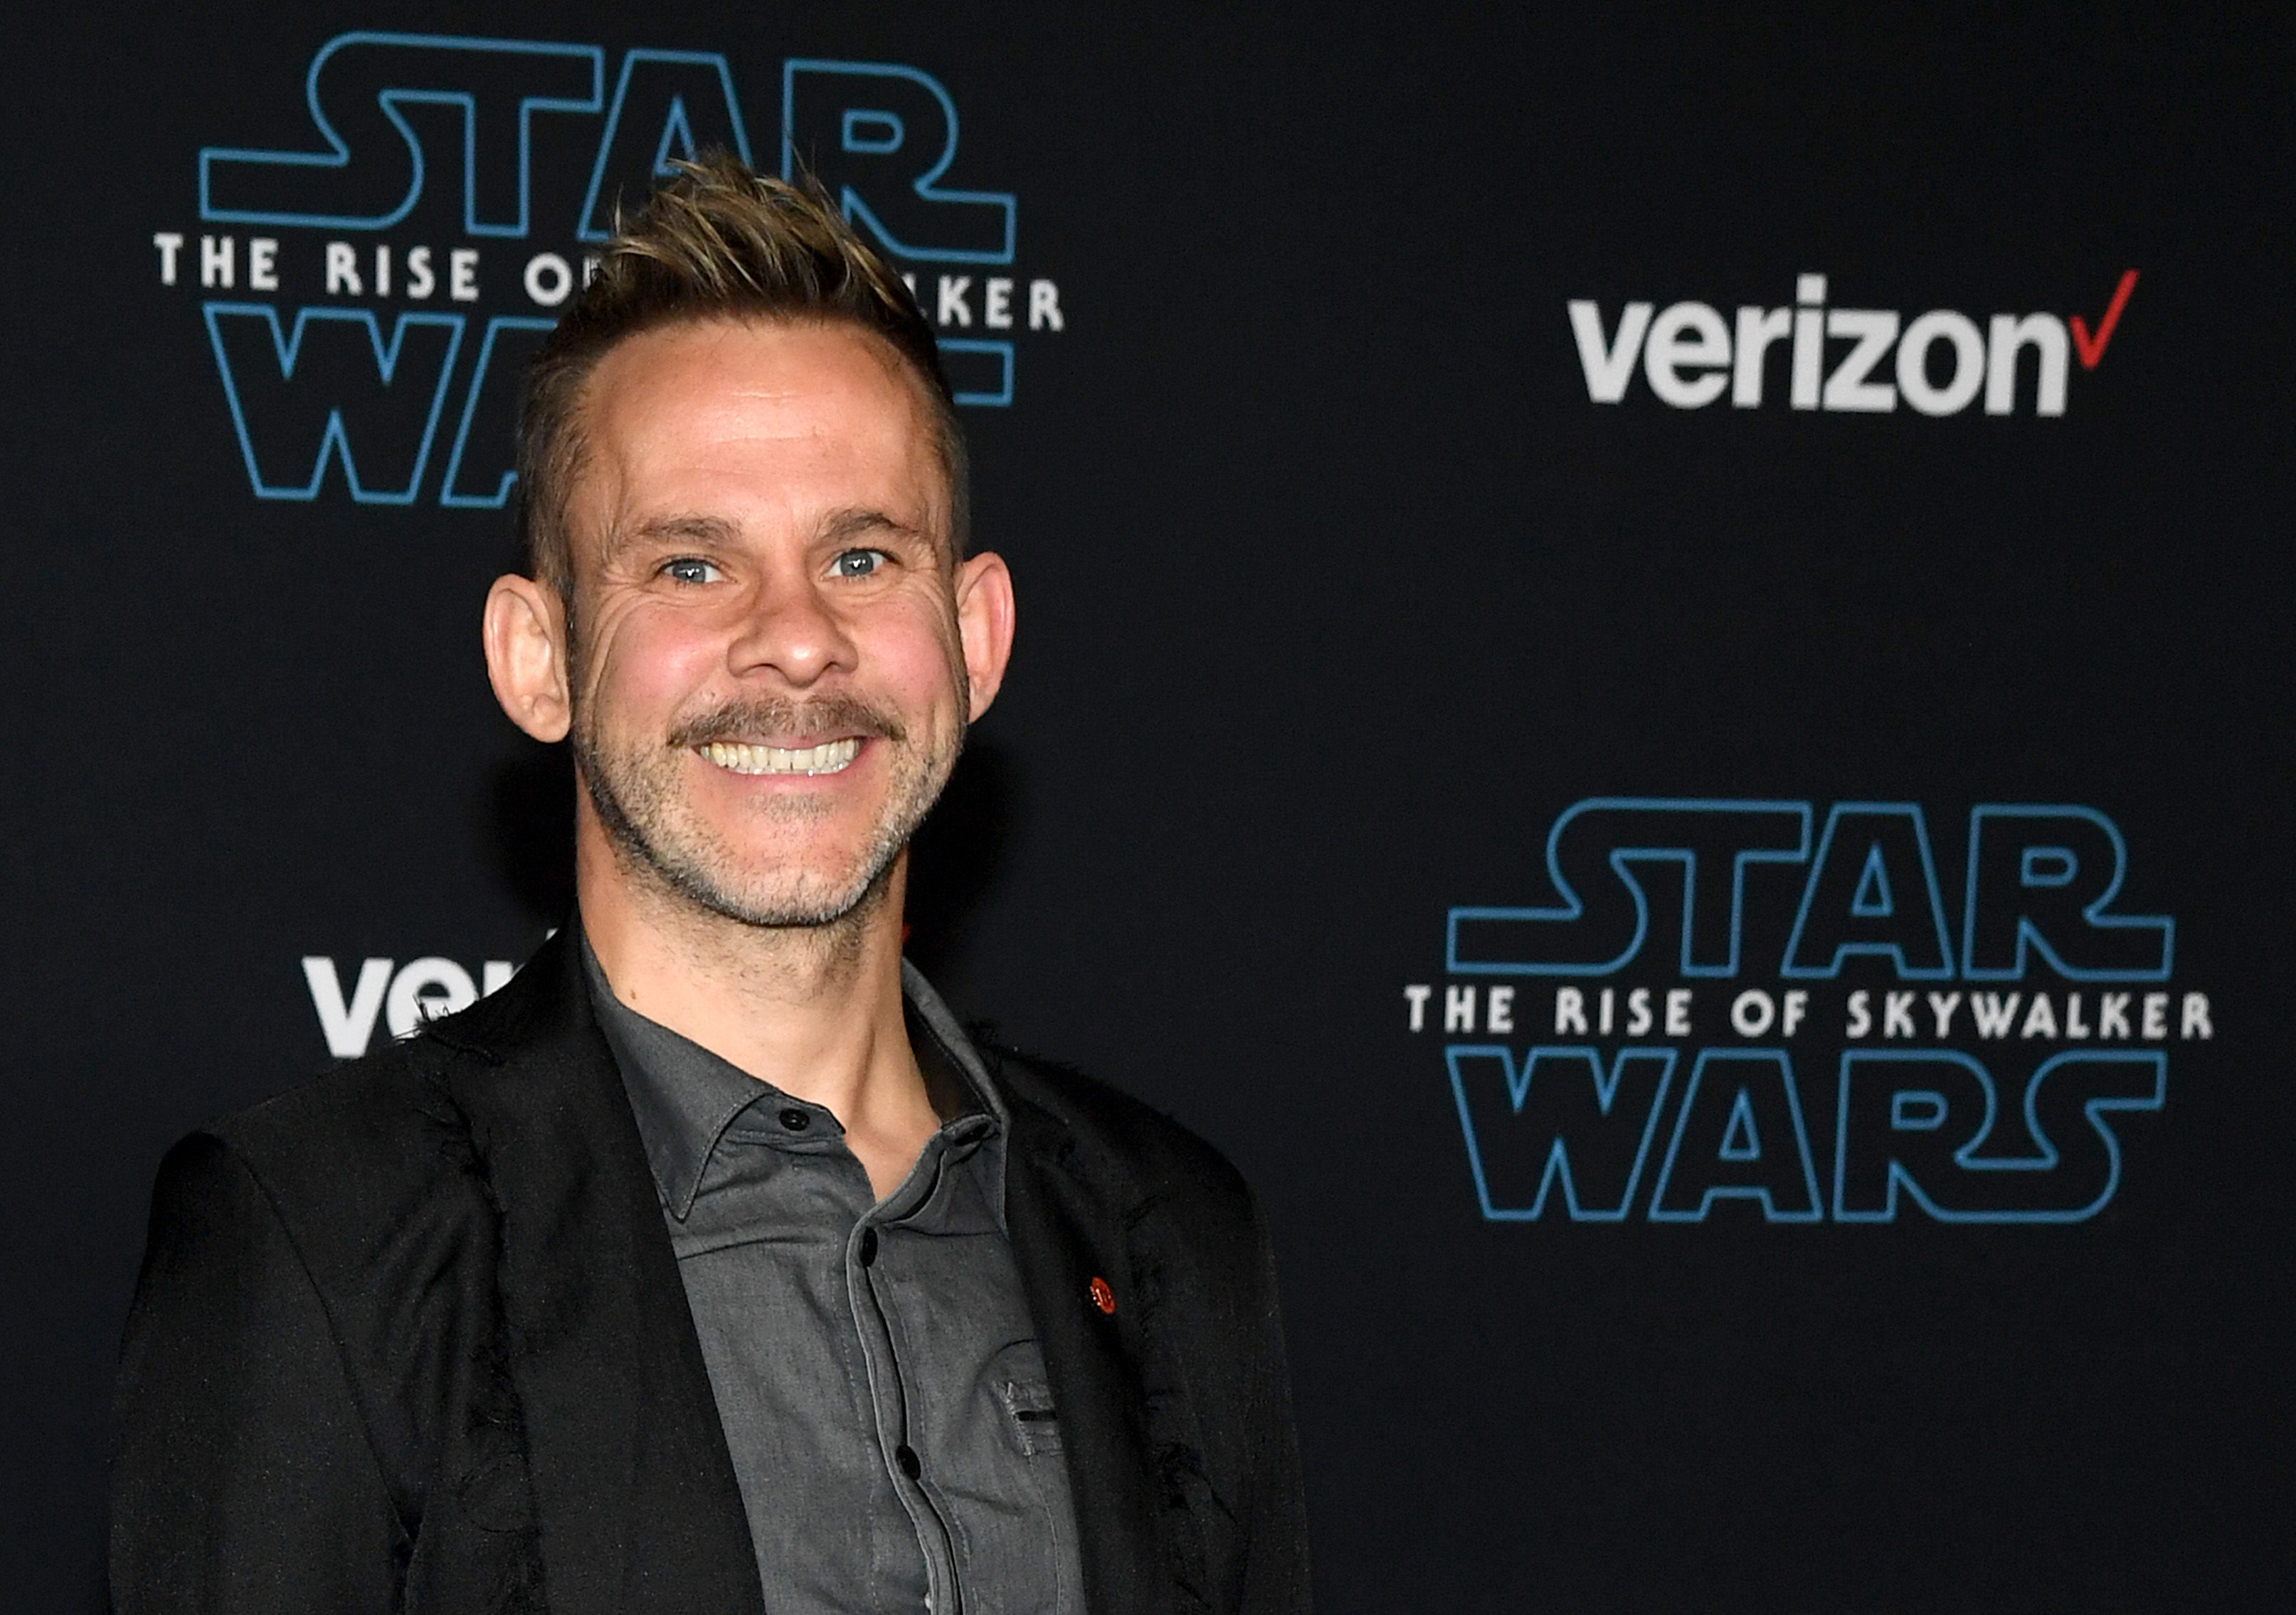 The Rise Of Skywalker Visual Dictionary Sheds Light On Dominic Monaghan